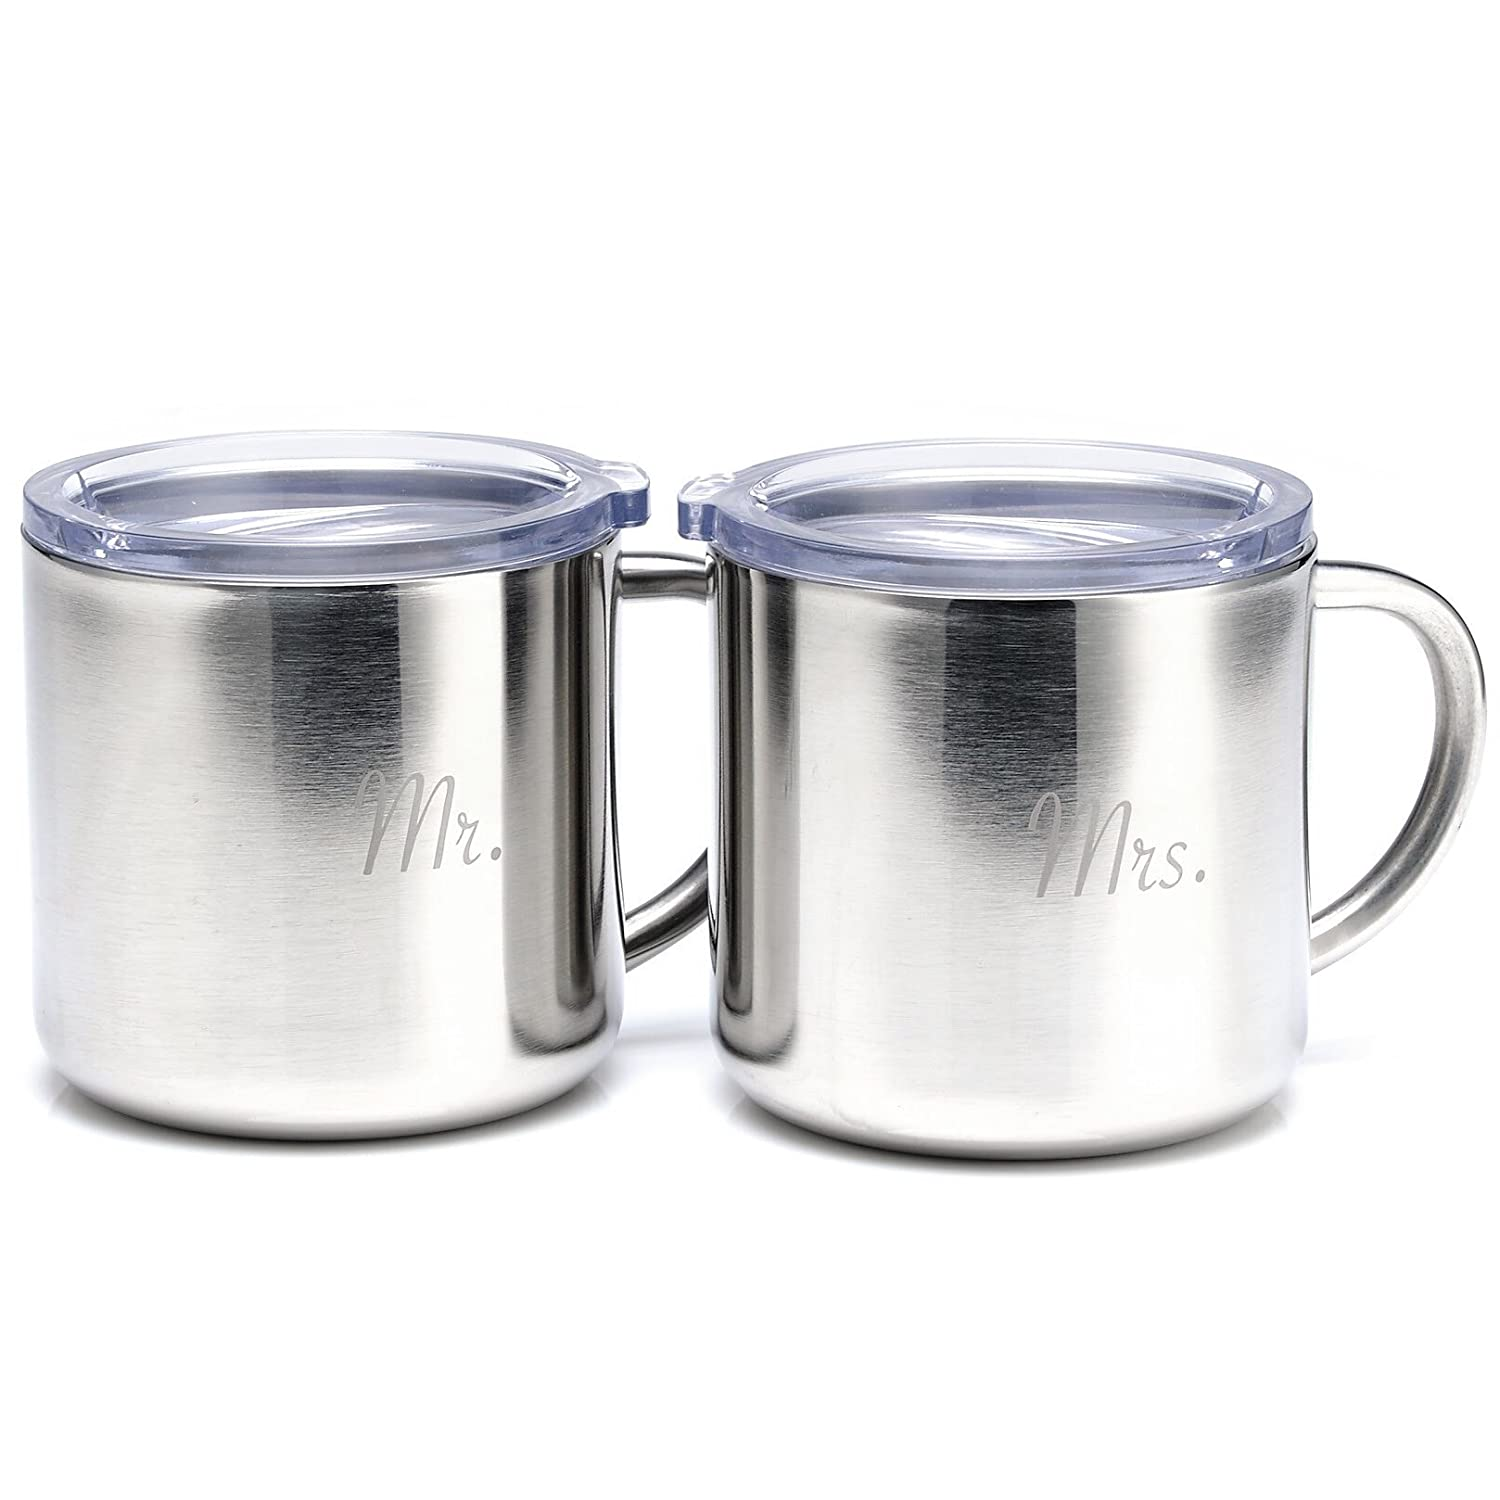 Mr. & Mrs. Coffee Mug Set made our list of camping gifts couples will love and are the best gifts for couples who camp in tents or RVs including awesome gifts for people who love camping with their friends and families!